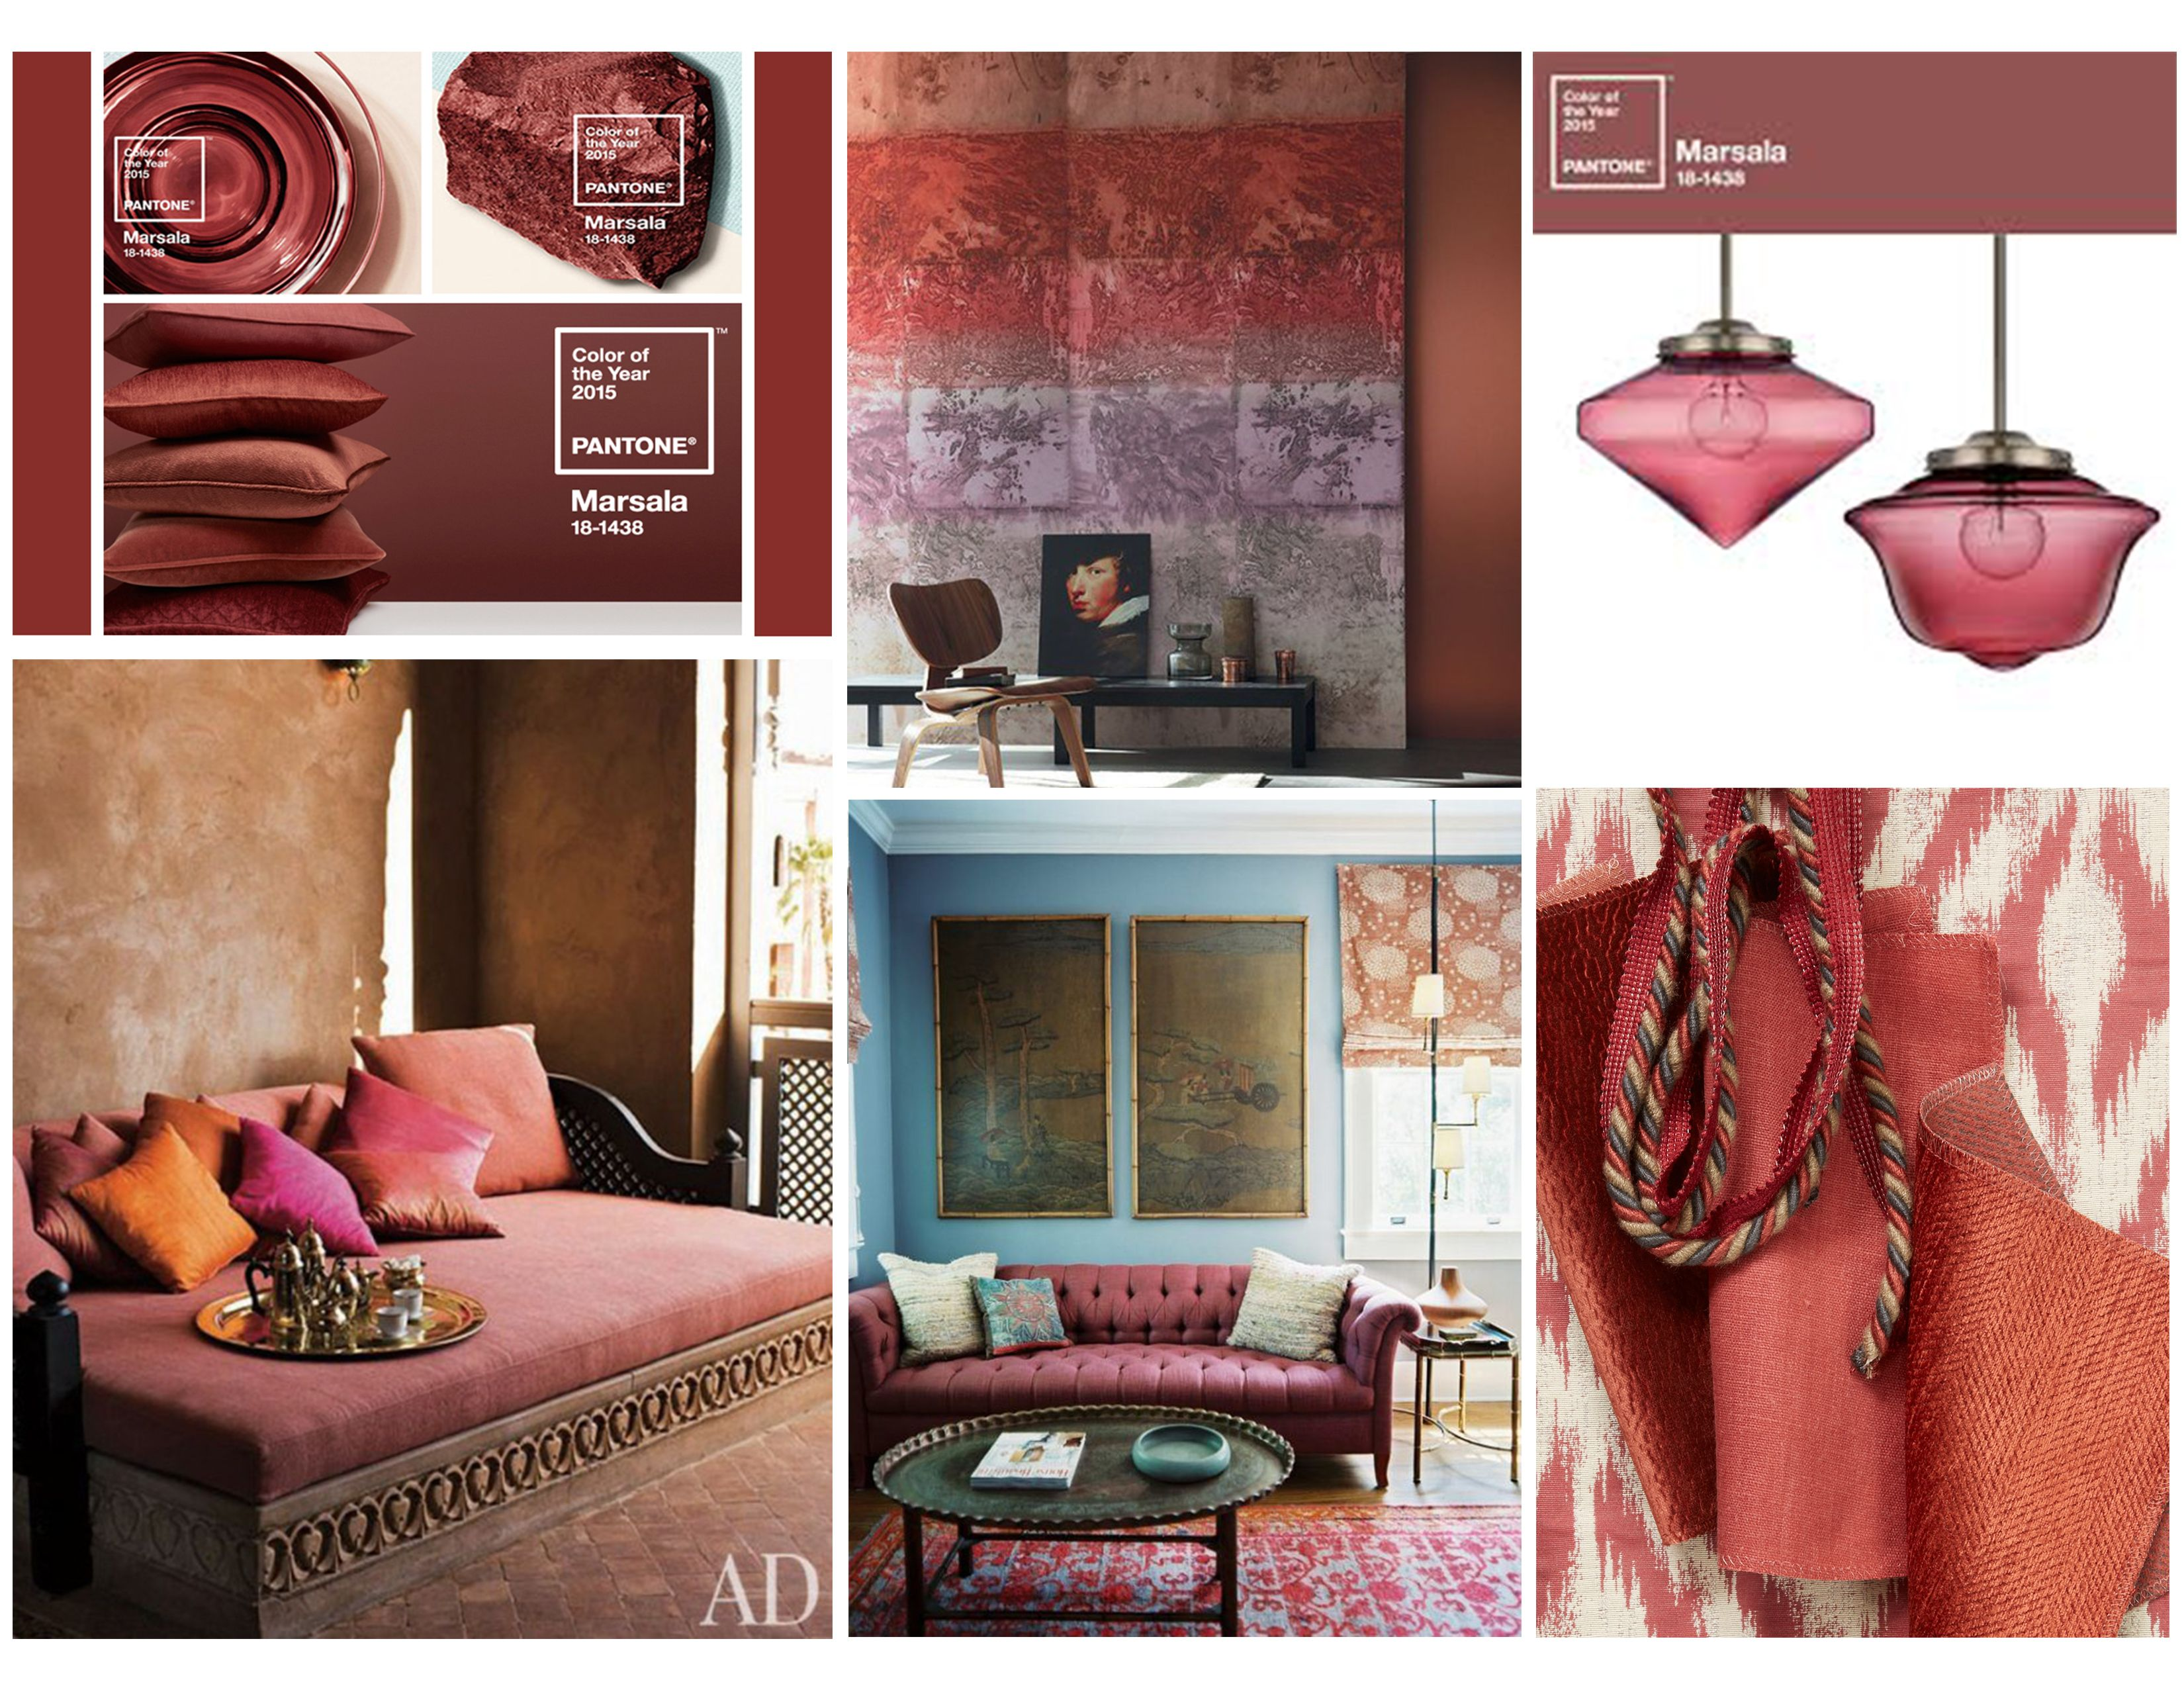 26 beautiful burgundy accents for fall home d 233 cor digsdigs -  Dusty Muted Burgundy Great For The Bohemian Chic Look That Has Been Trending See More 26 Beautiful Burgundy Accents For Fall Home D Cor Digsdigs